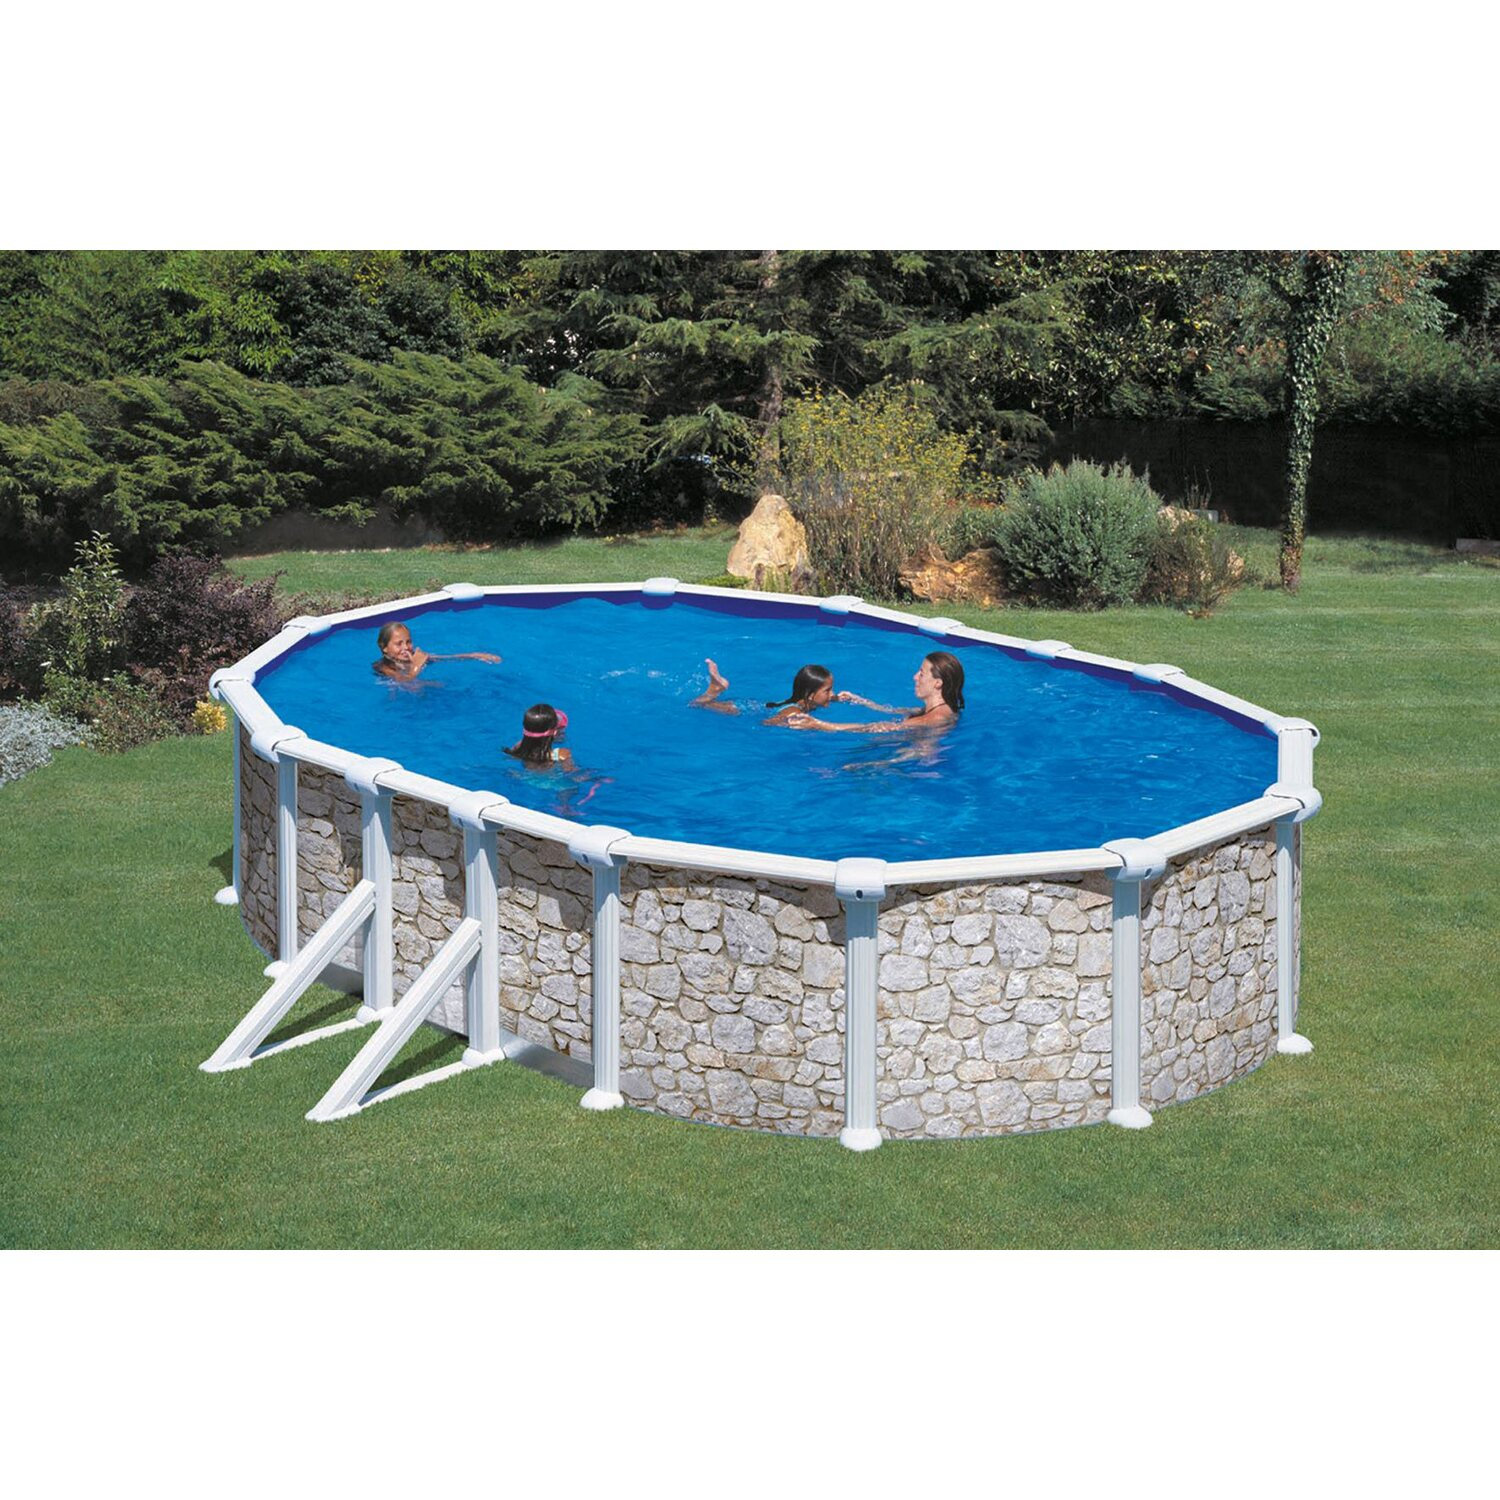 Stahlwand pool set sein dekor aufstellbecken ovalform 610 for Obi pool set